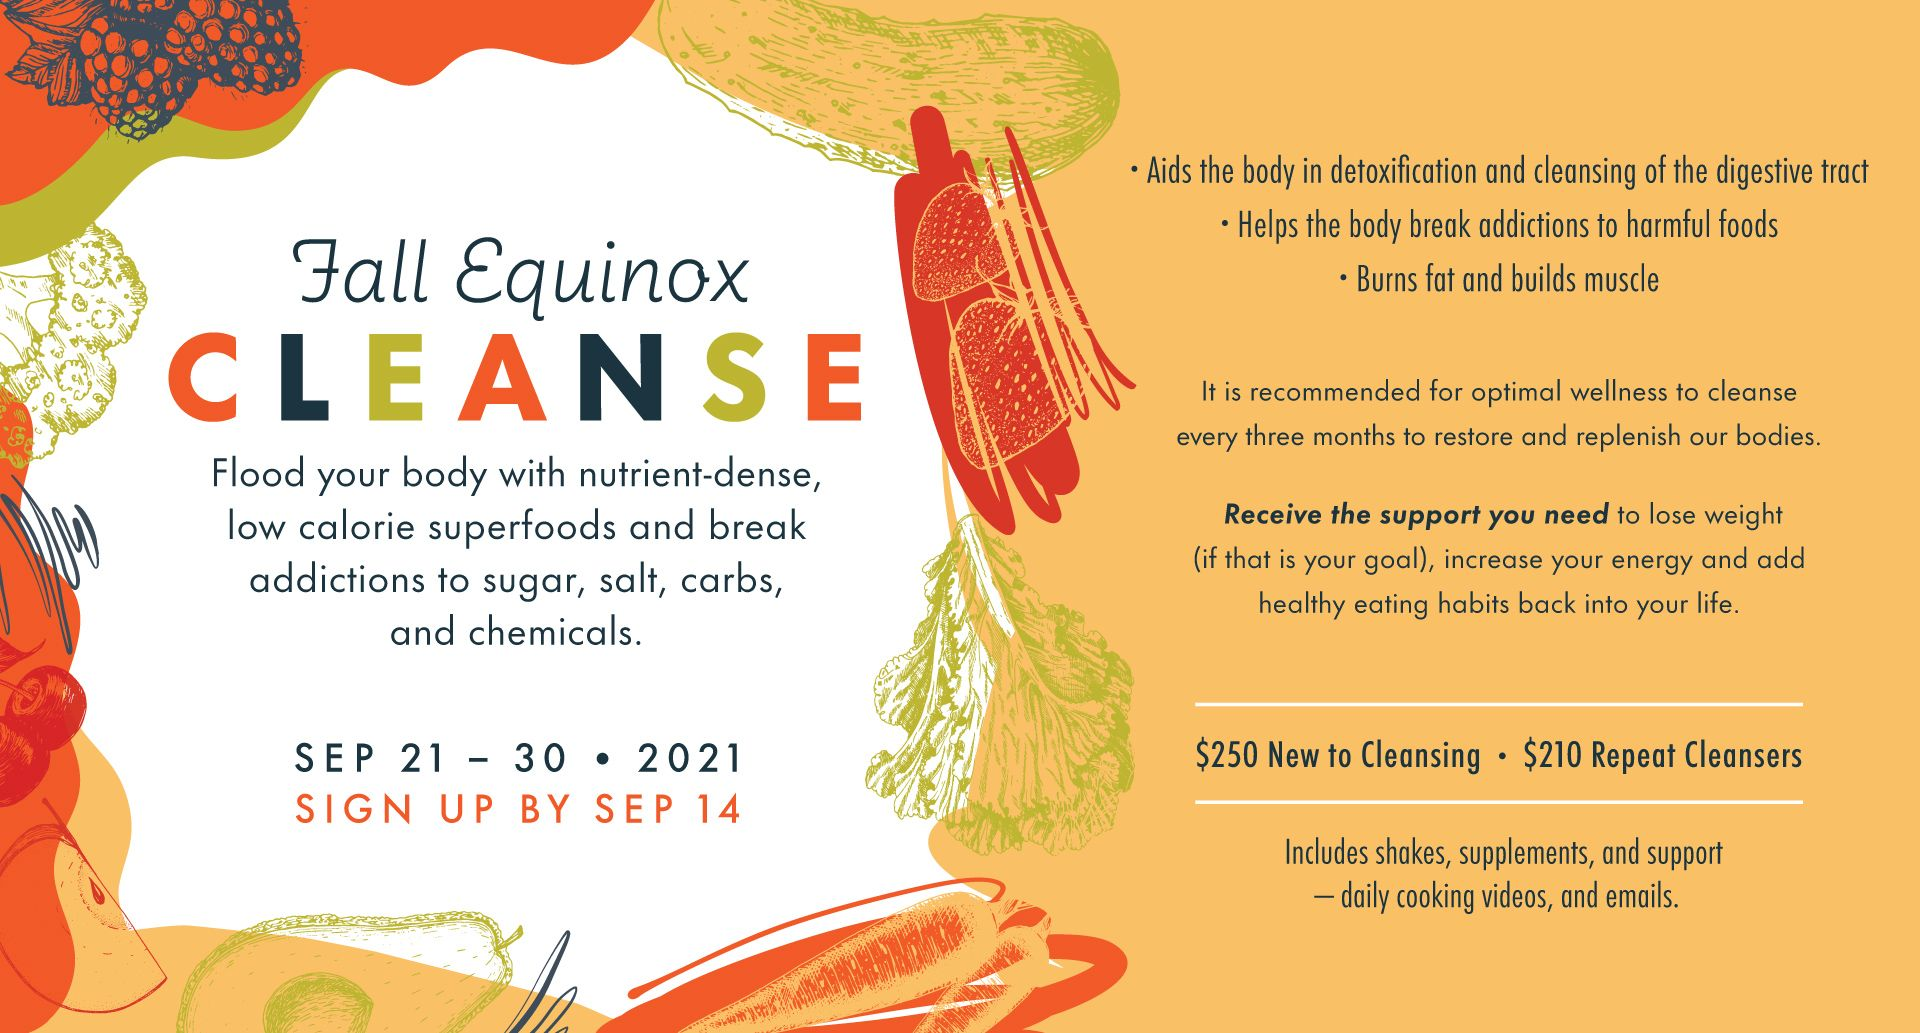 Del Sol Fall Equinox 10 Day Cleanse 2021